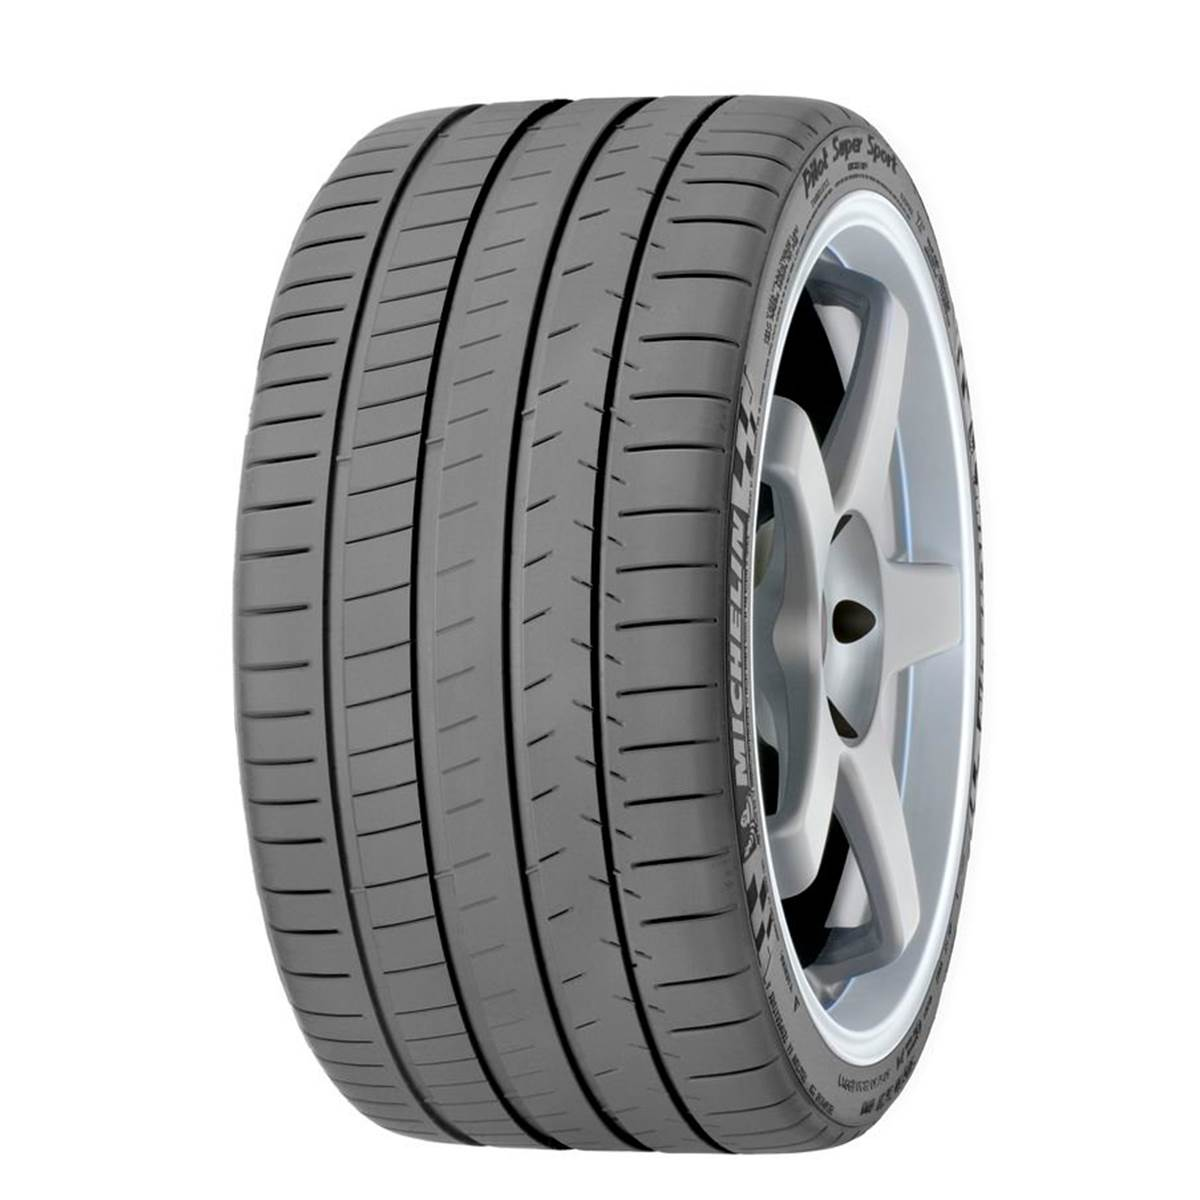 Pneu Michelin 215/45R17 91Y Pilot Super Sport XL